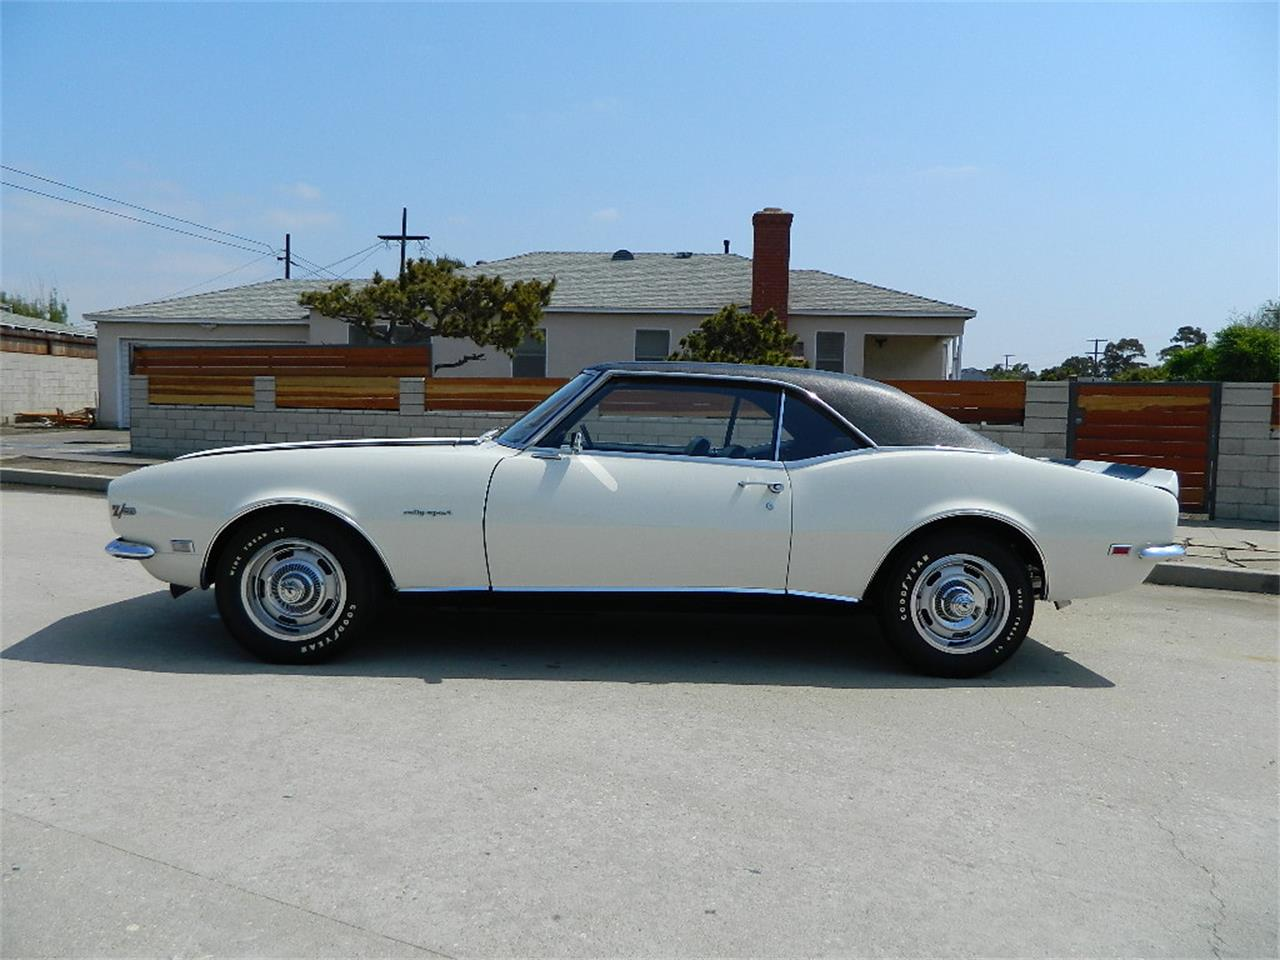 Large Picture of Classic '68 Chevrolet Camaro RS Z28 - $89,000.00 Offered by Classic Car Marketing, Inc. - NOYI